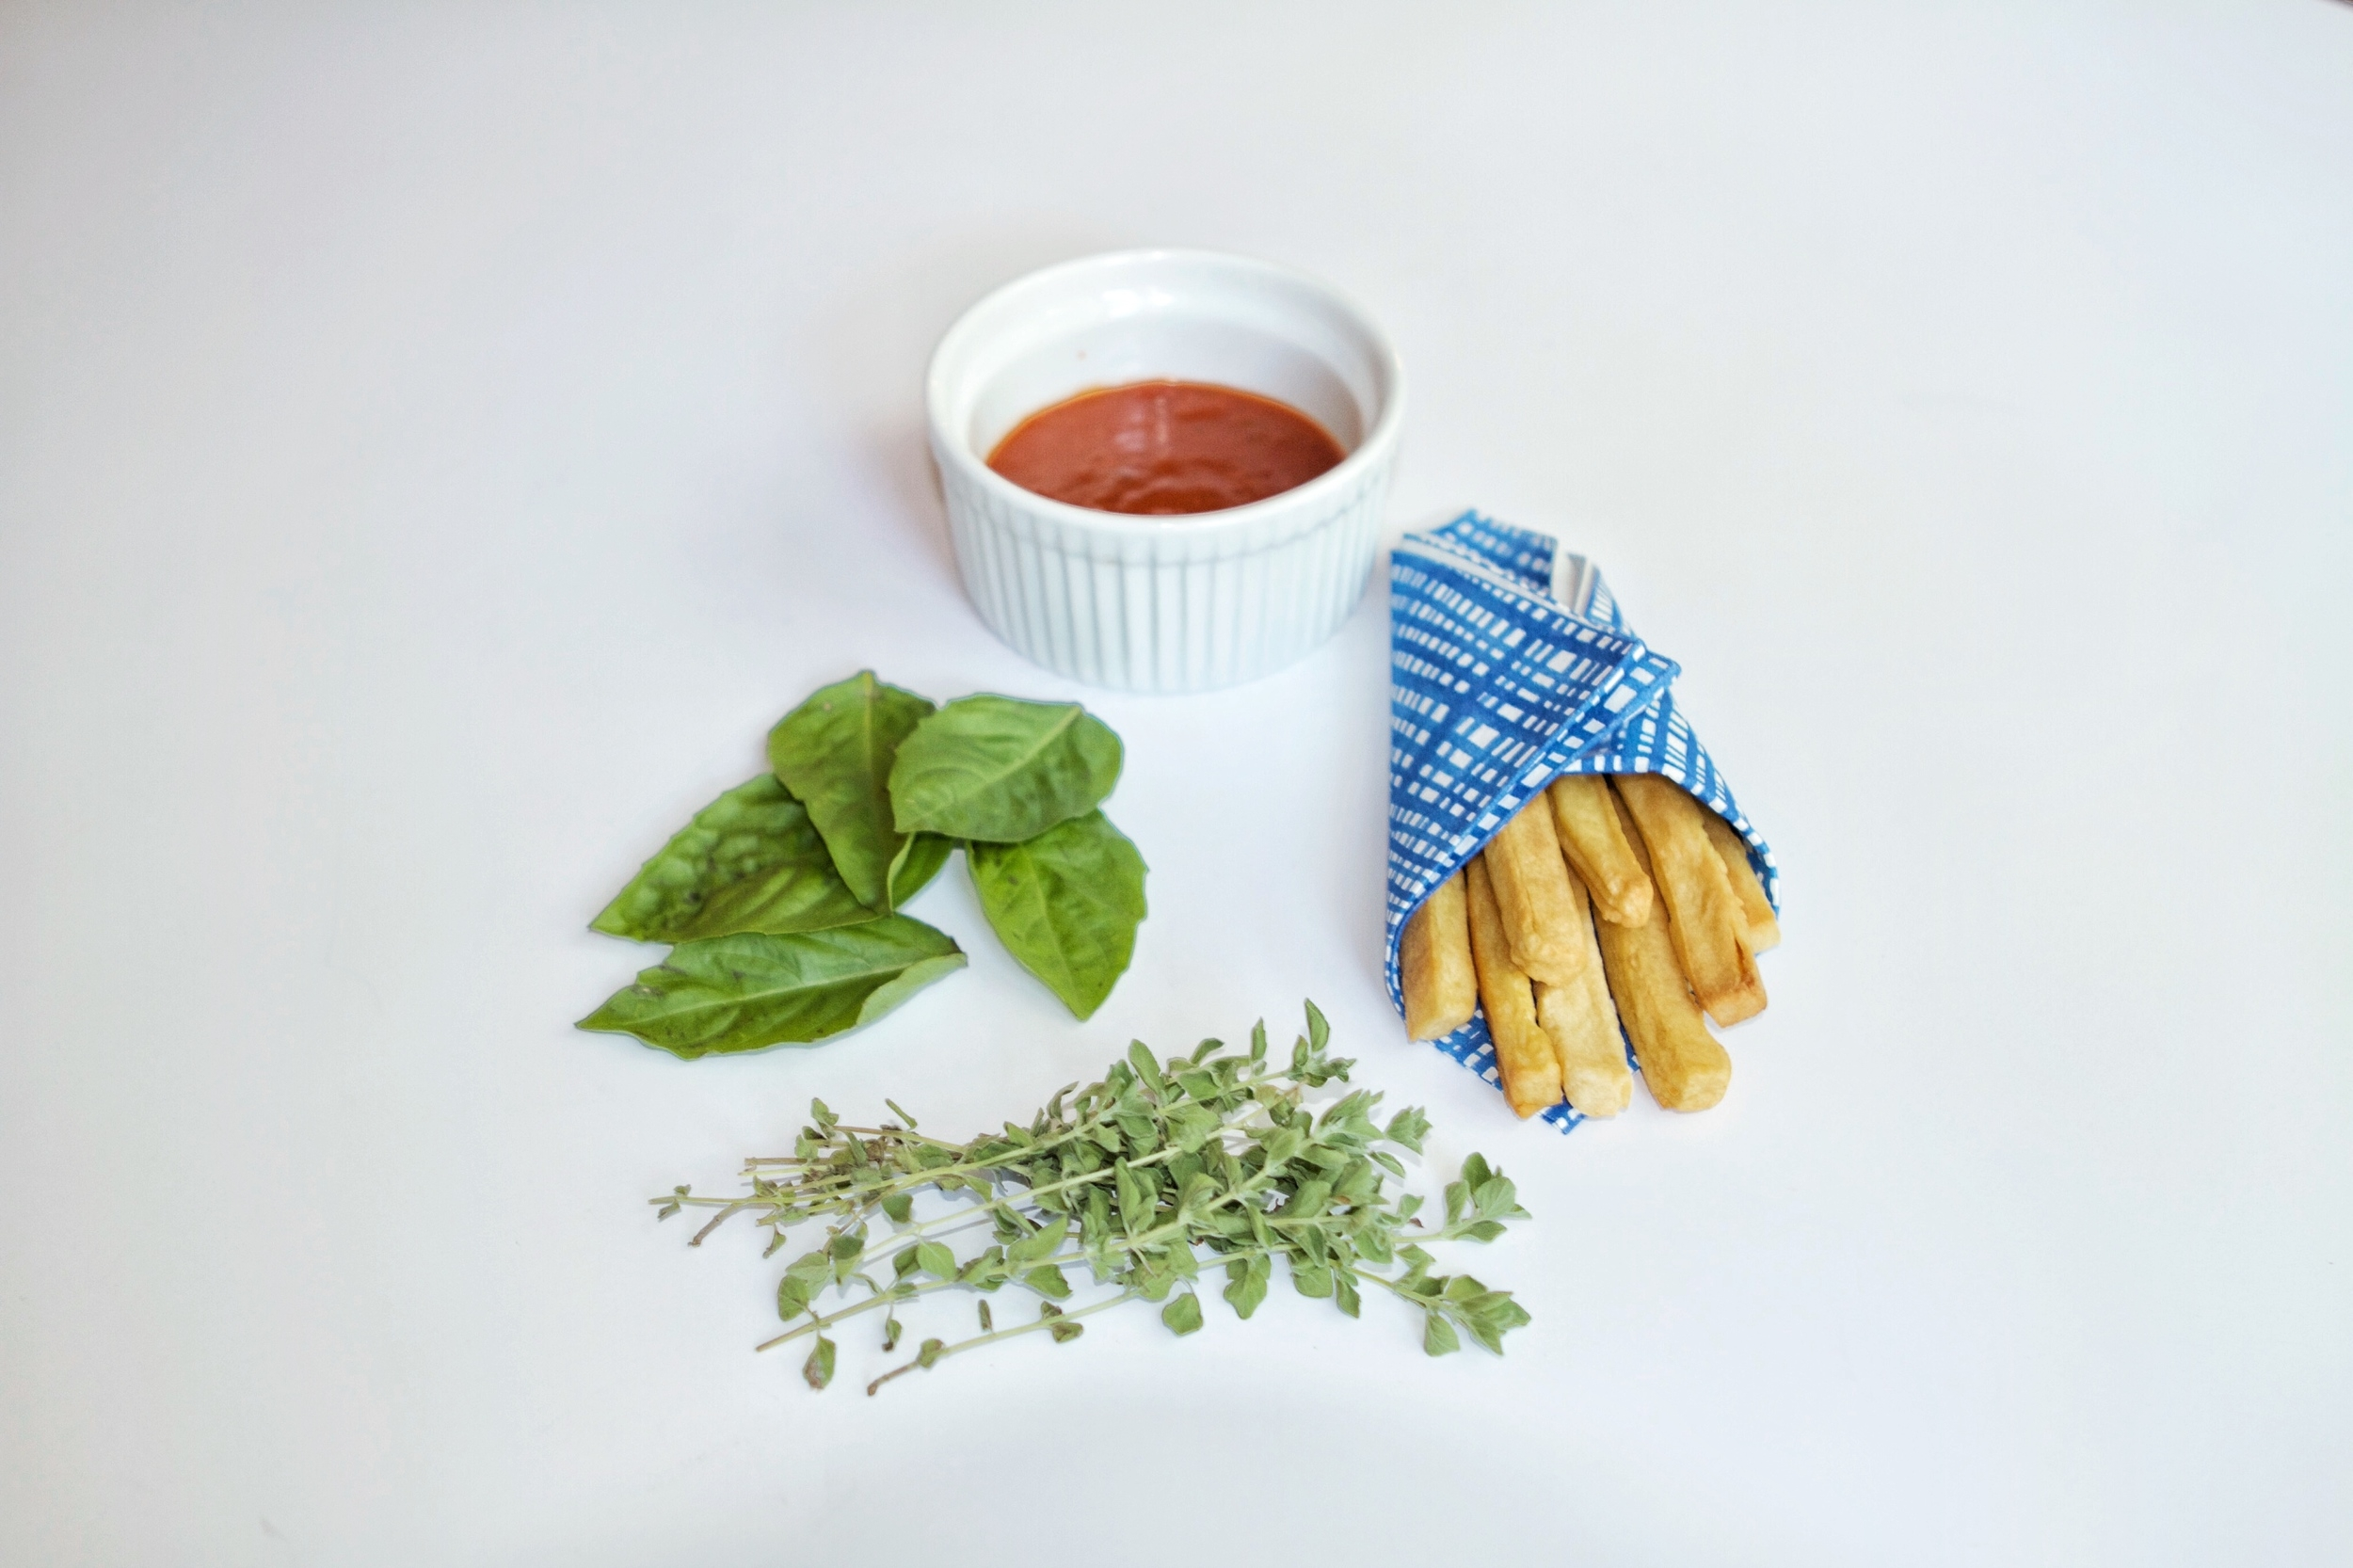 IMG_5046_Marinara Faded in Background with Herbs and Fries in Foreground.jpg